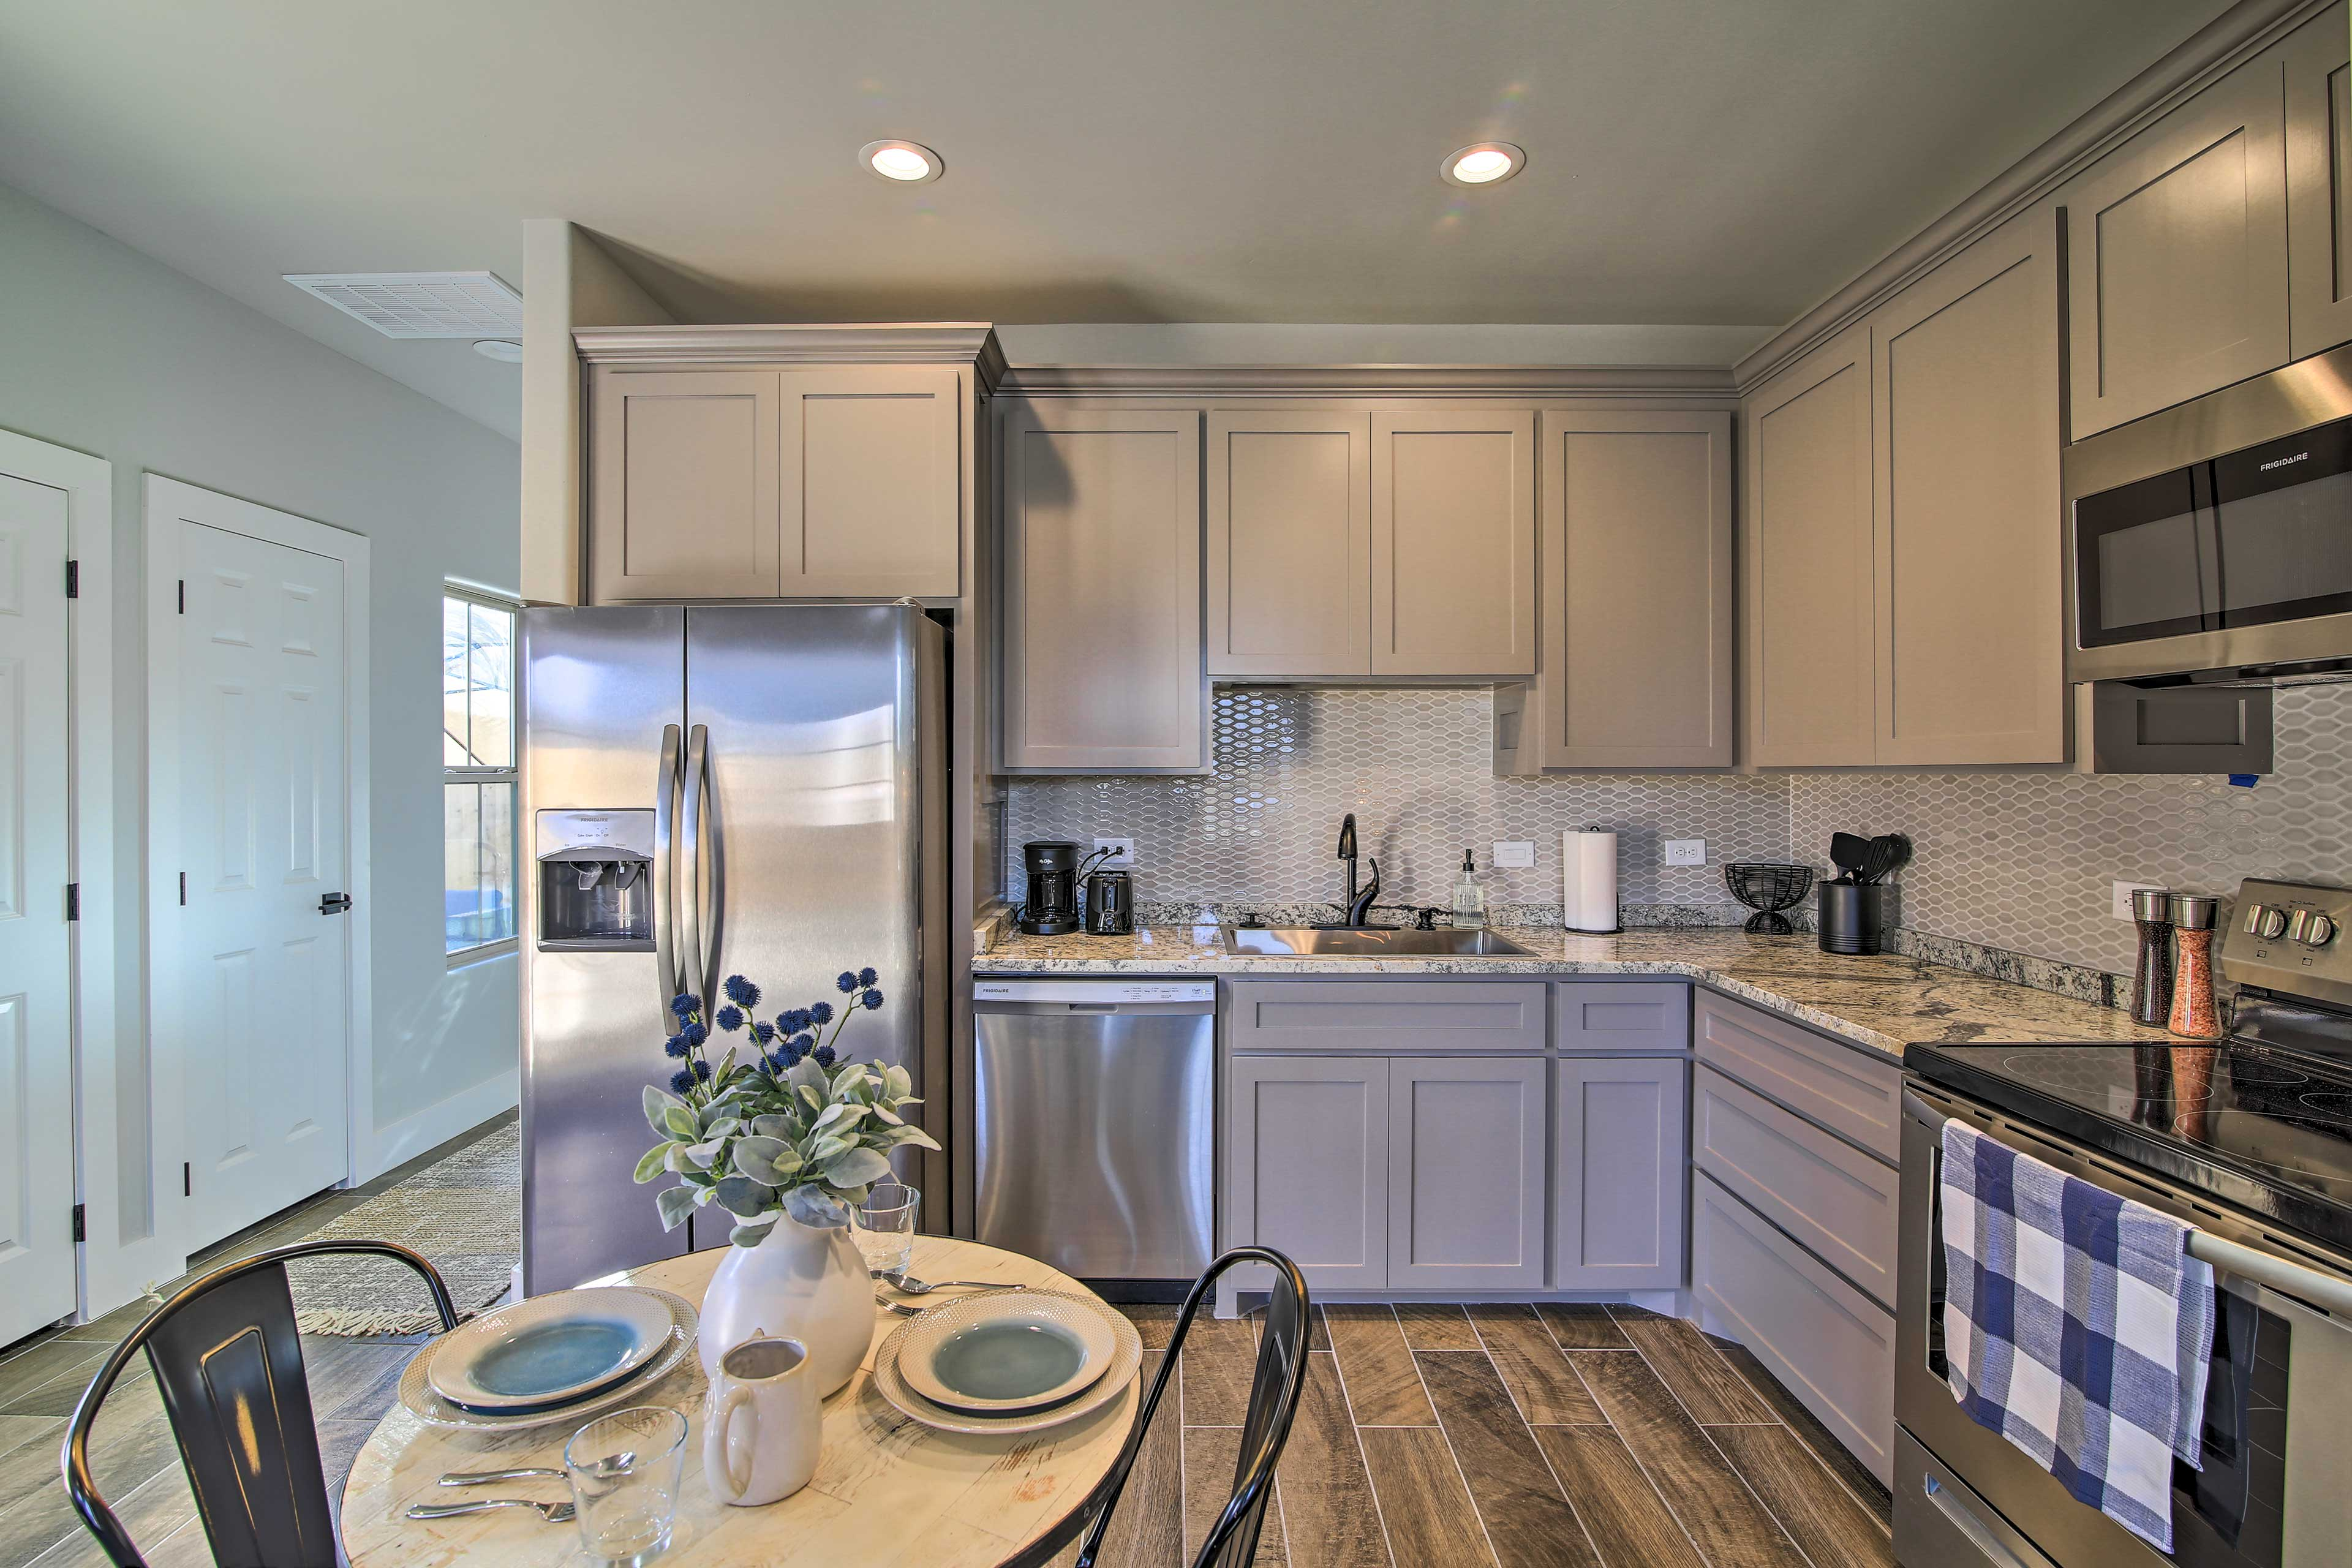 Fully Equipped Kitchen | Cooking Basics & Spices | Drip Coffee Maker